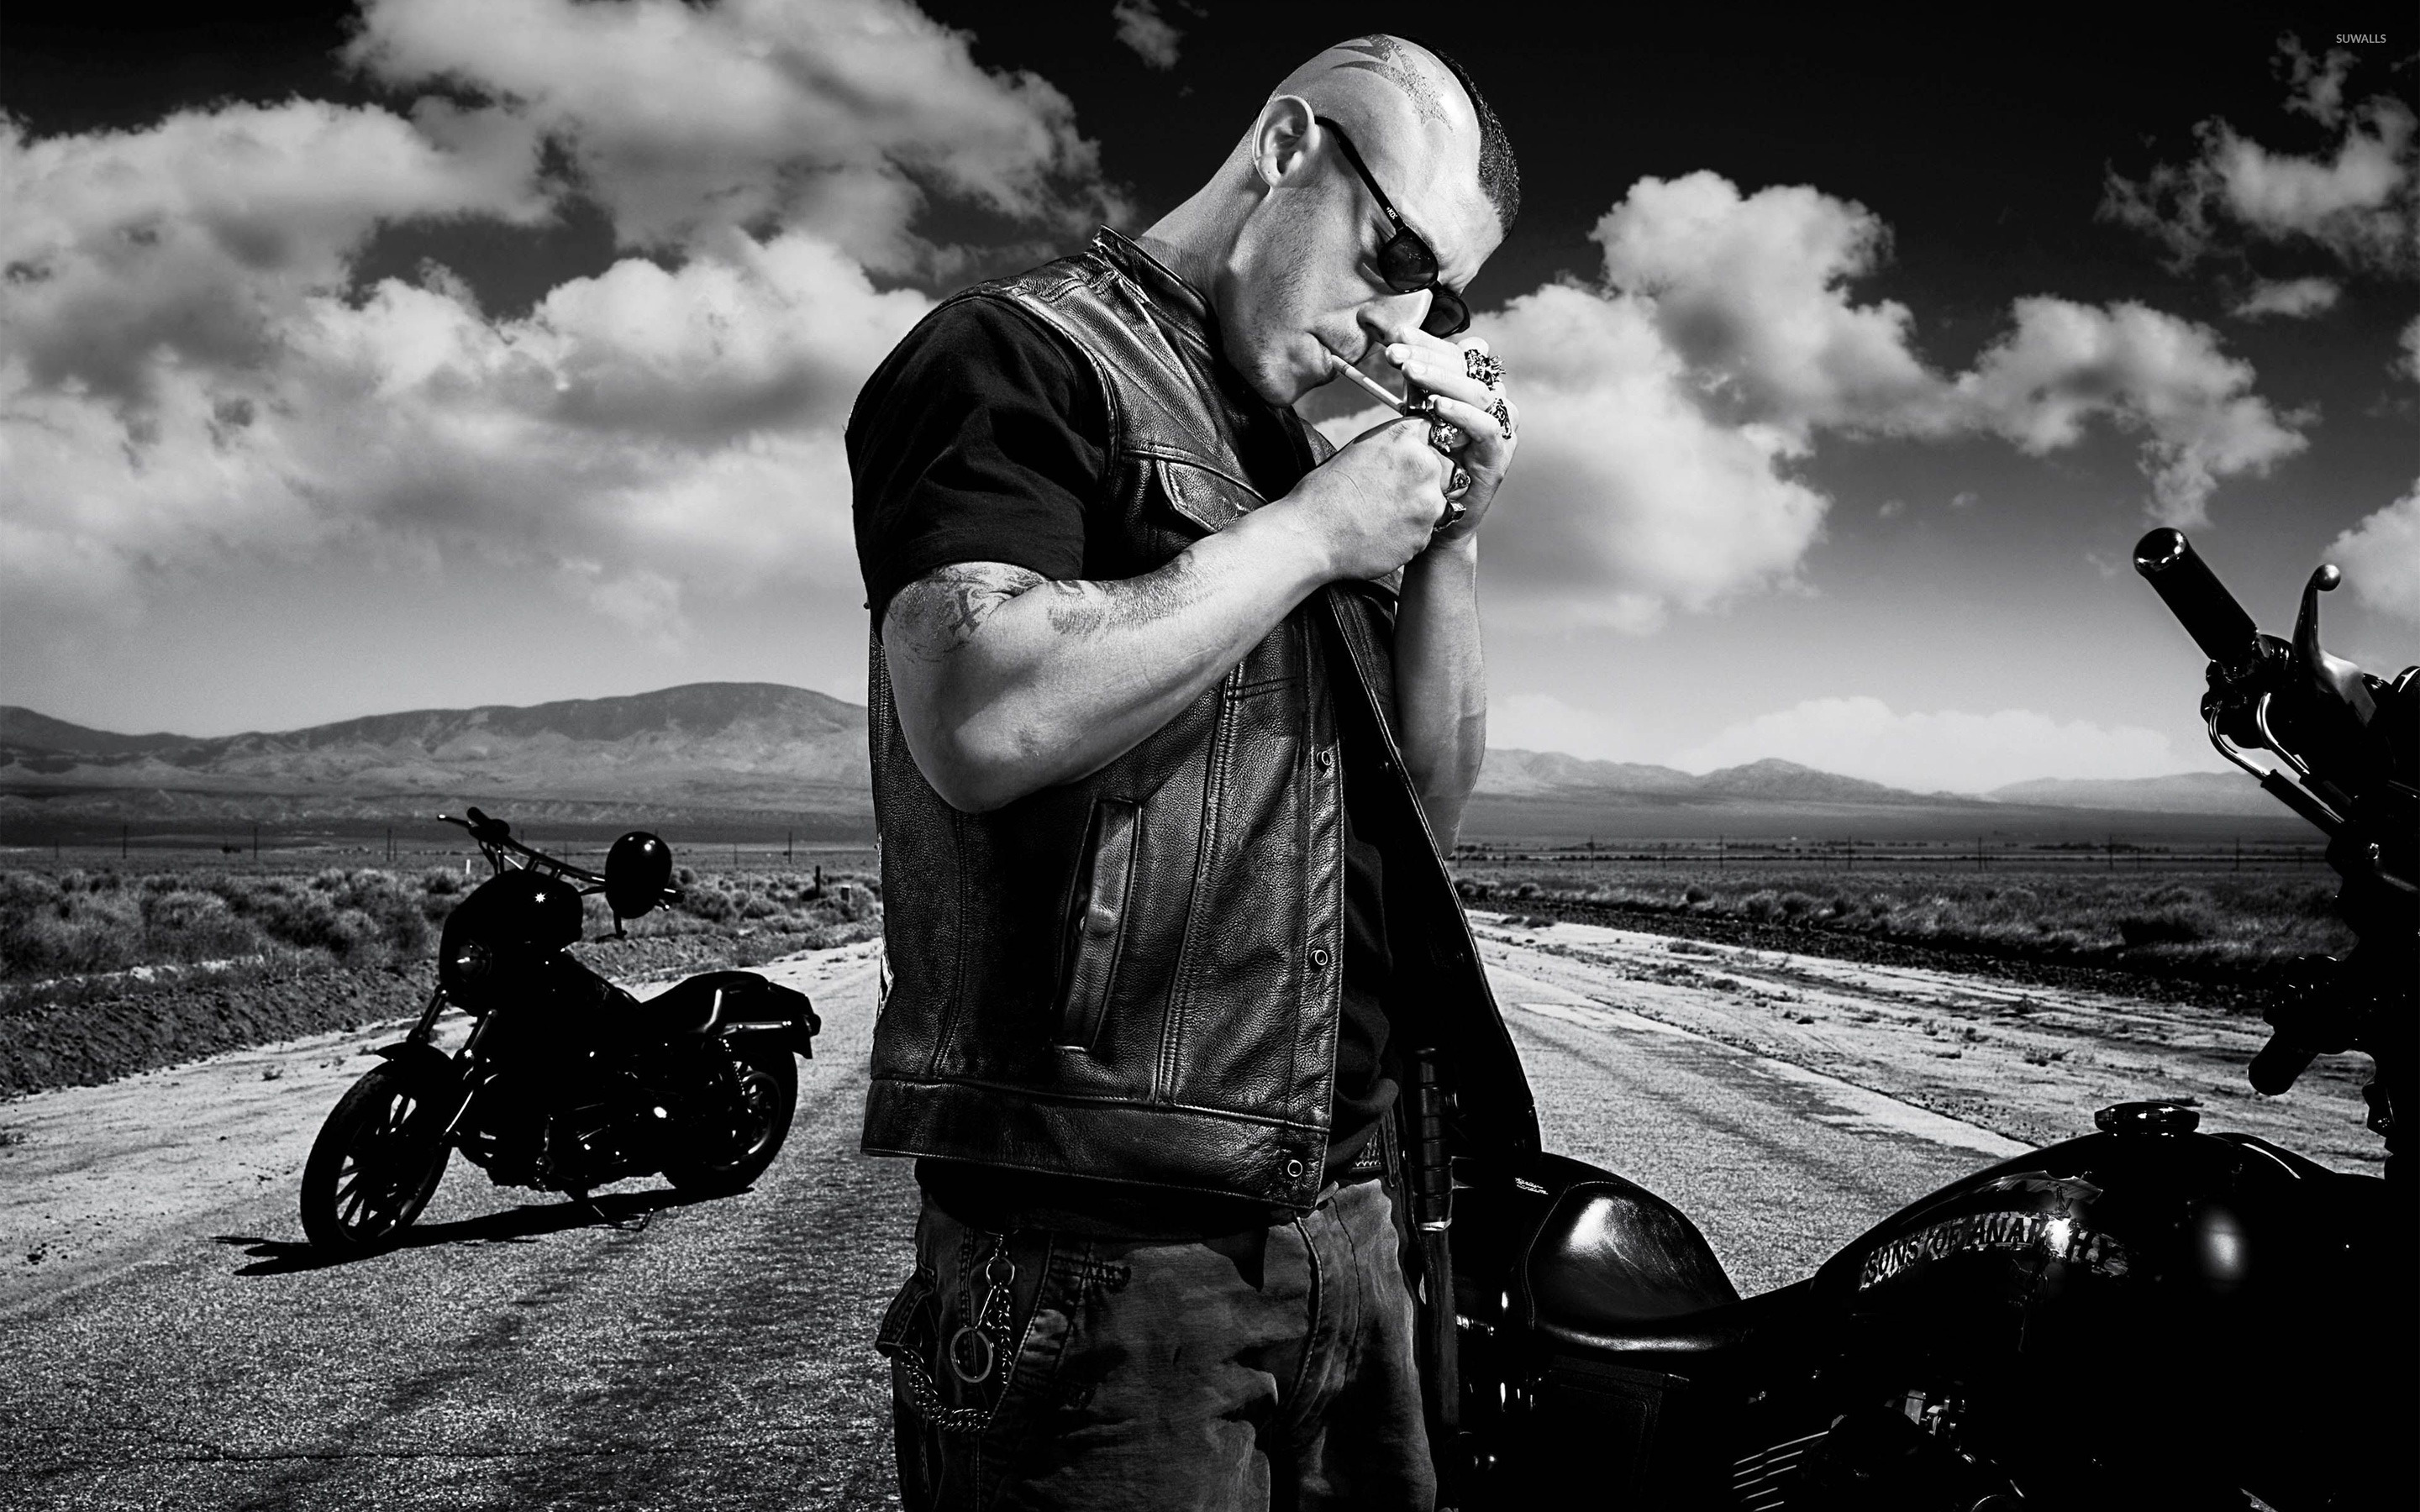 Juice Sons Of Anarchy Wallpaper Tv Show Wallpapers 24509